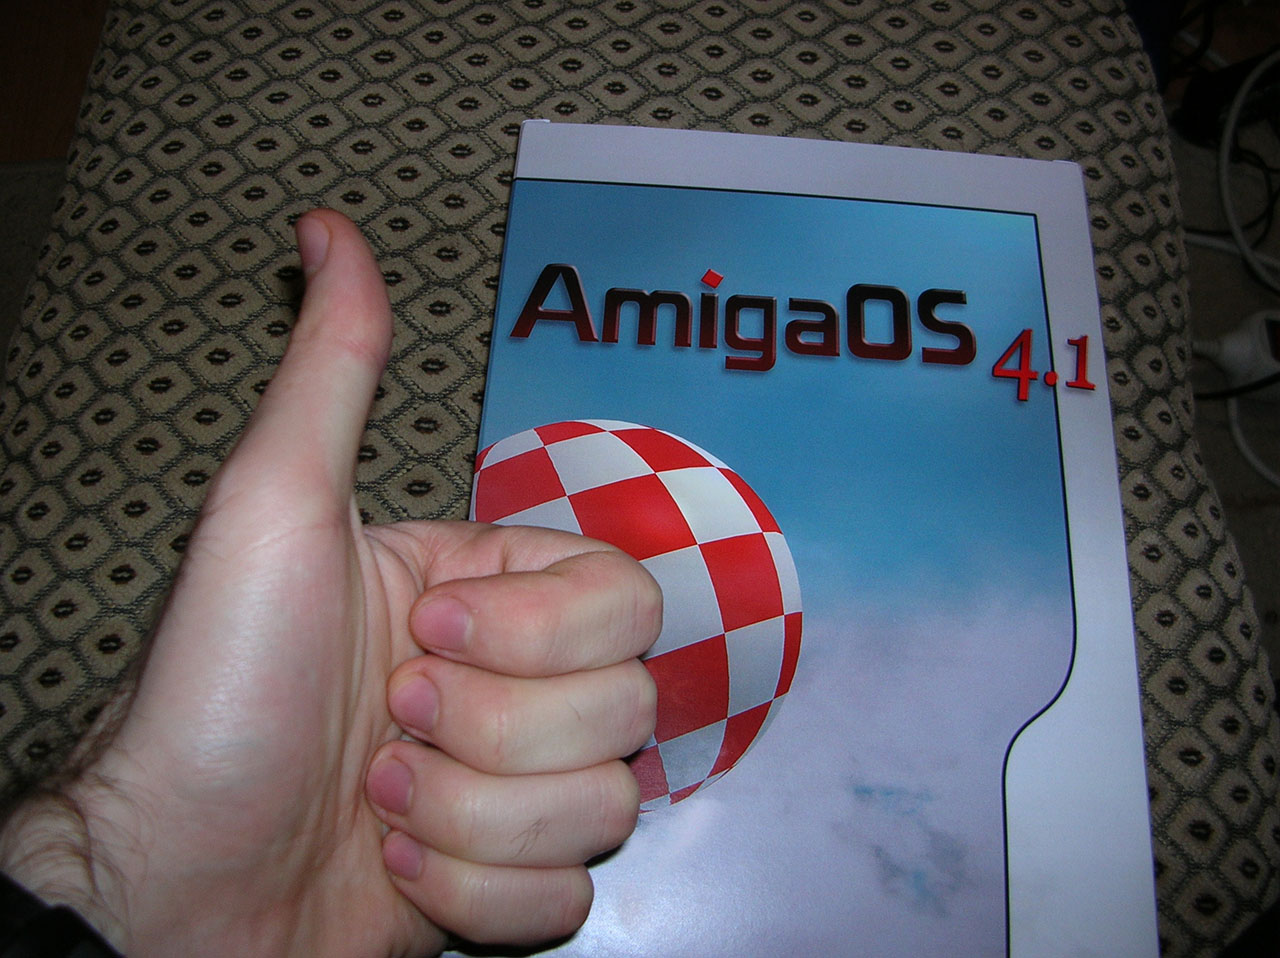 My AmigaOS 4.1 copy for the Pegasos II